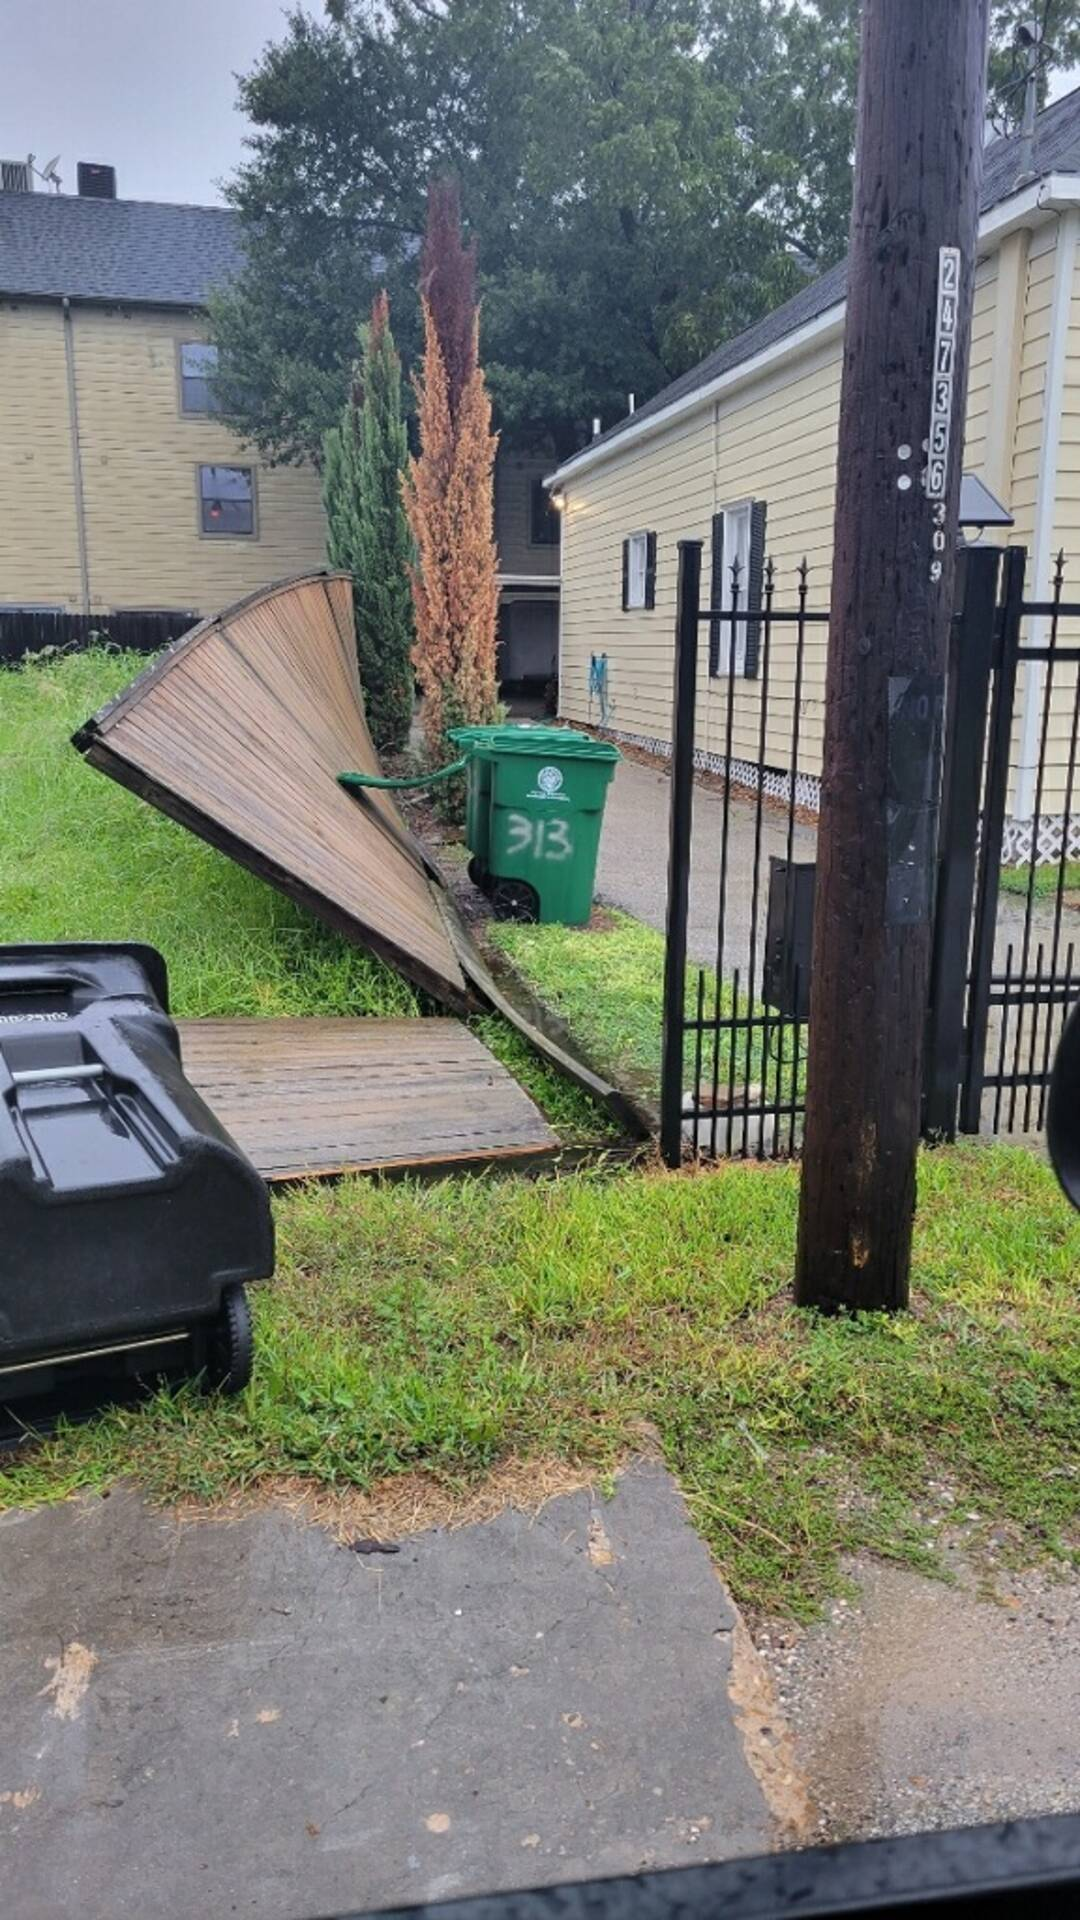 Either Nicholas got our fence or that green bin finally got tired of the fence talking back. LOL!